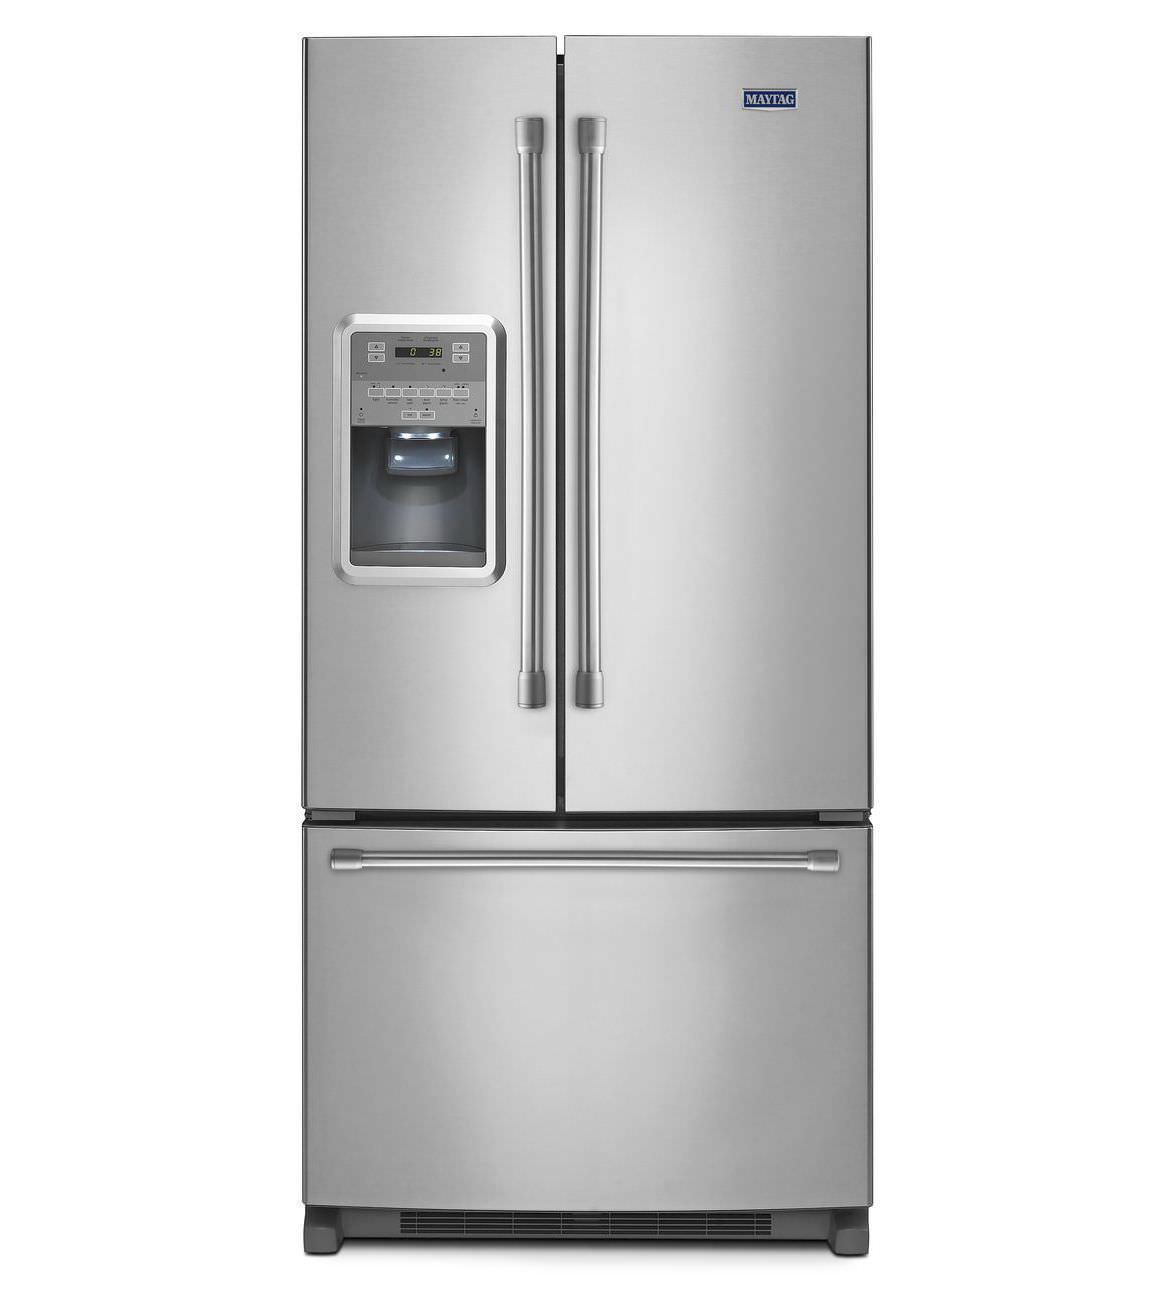 Home Refrigerator Freezer / American / Stainless Steel / With Water  Dispenser ...